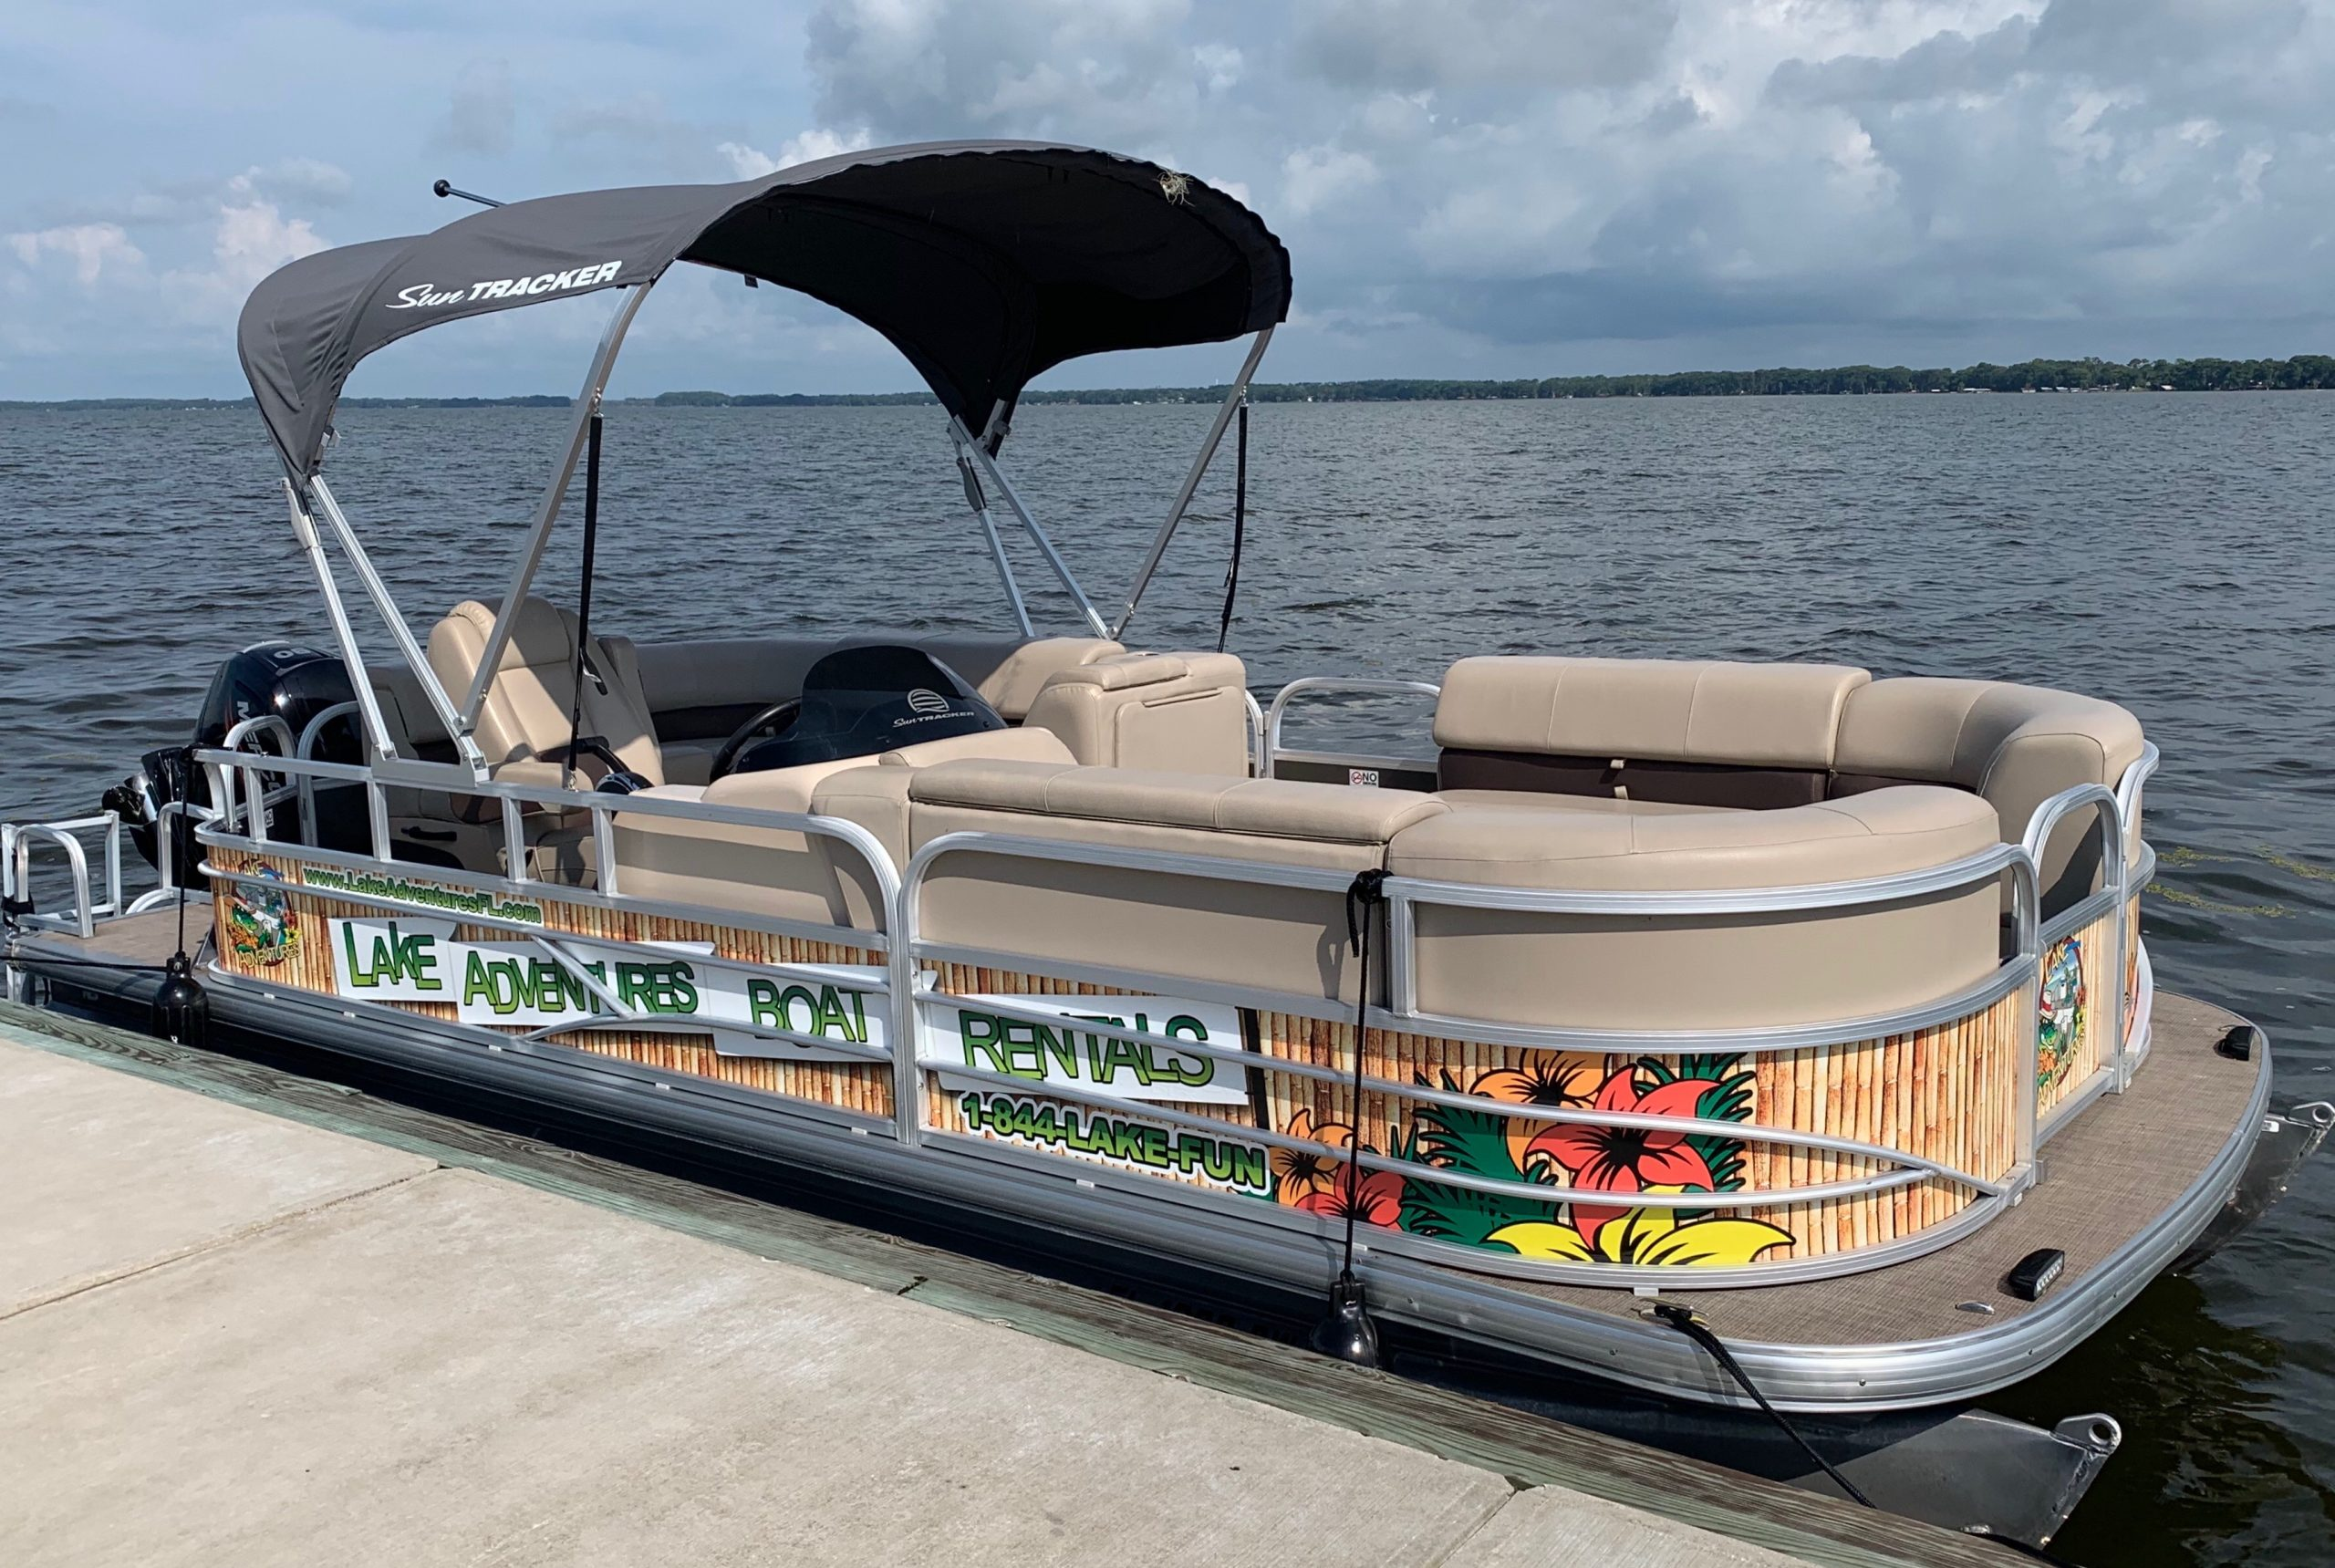 image of 20' pontoon boat with lounge seating and black canopy